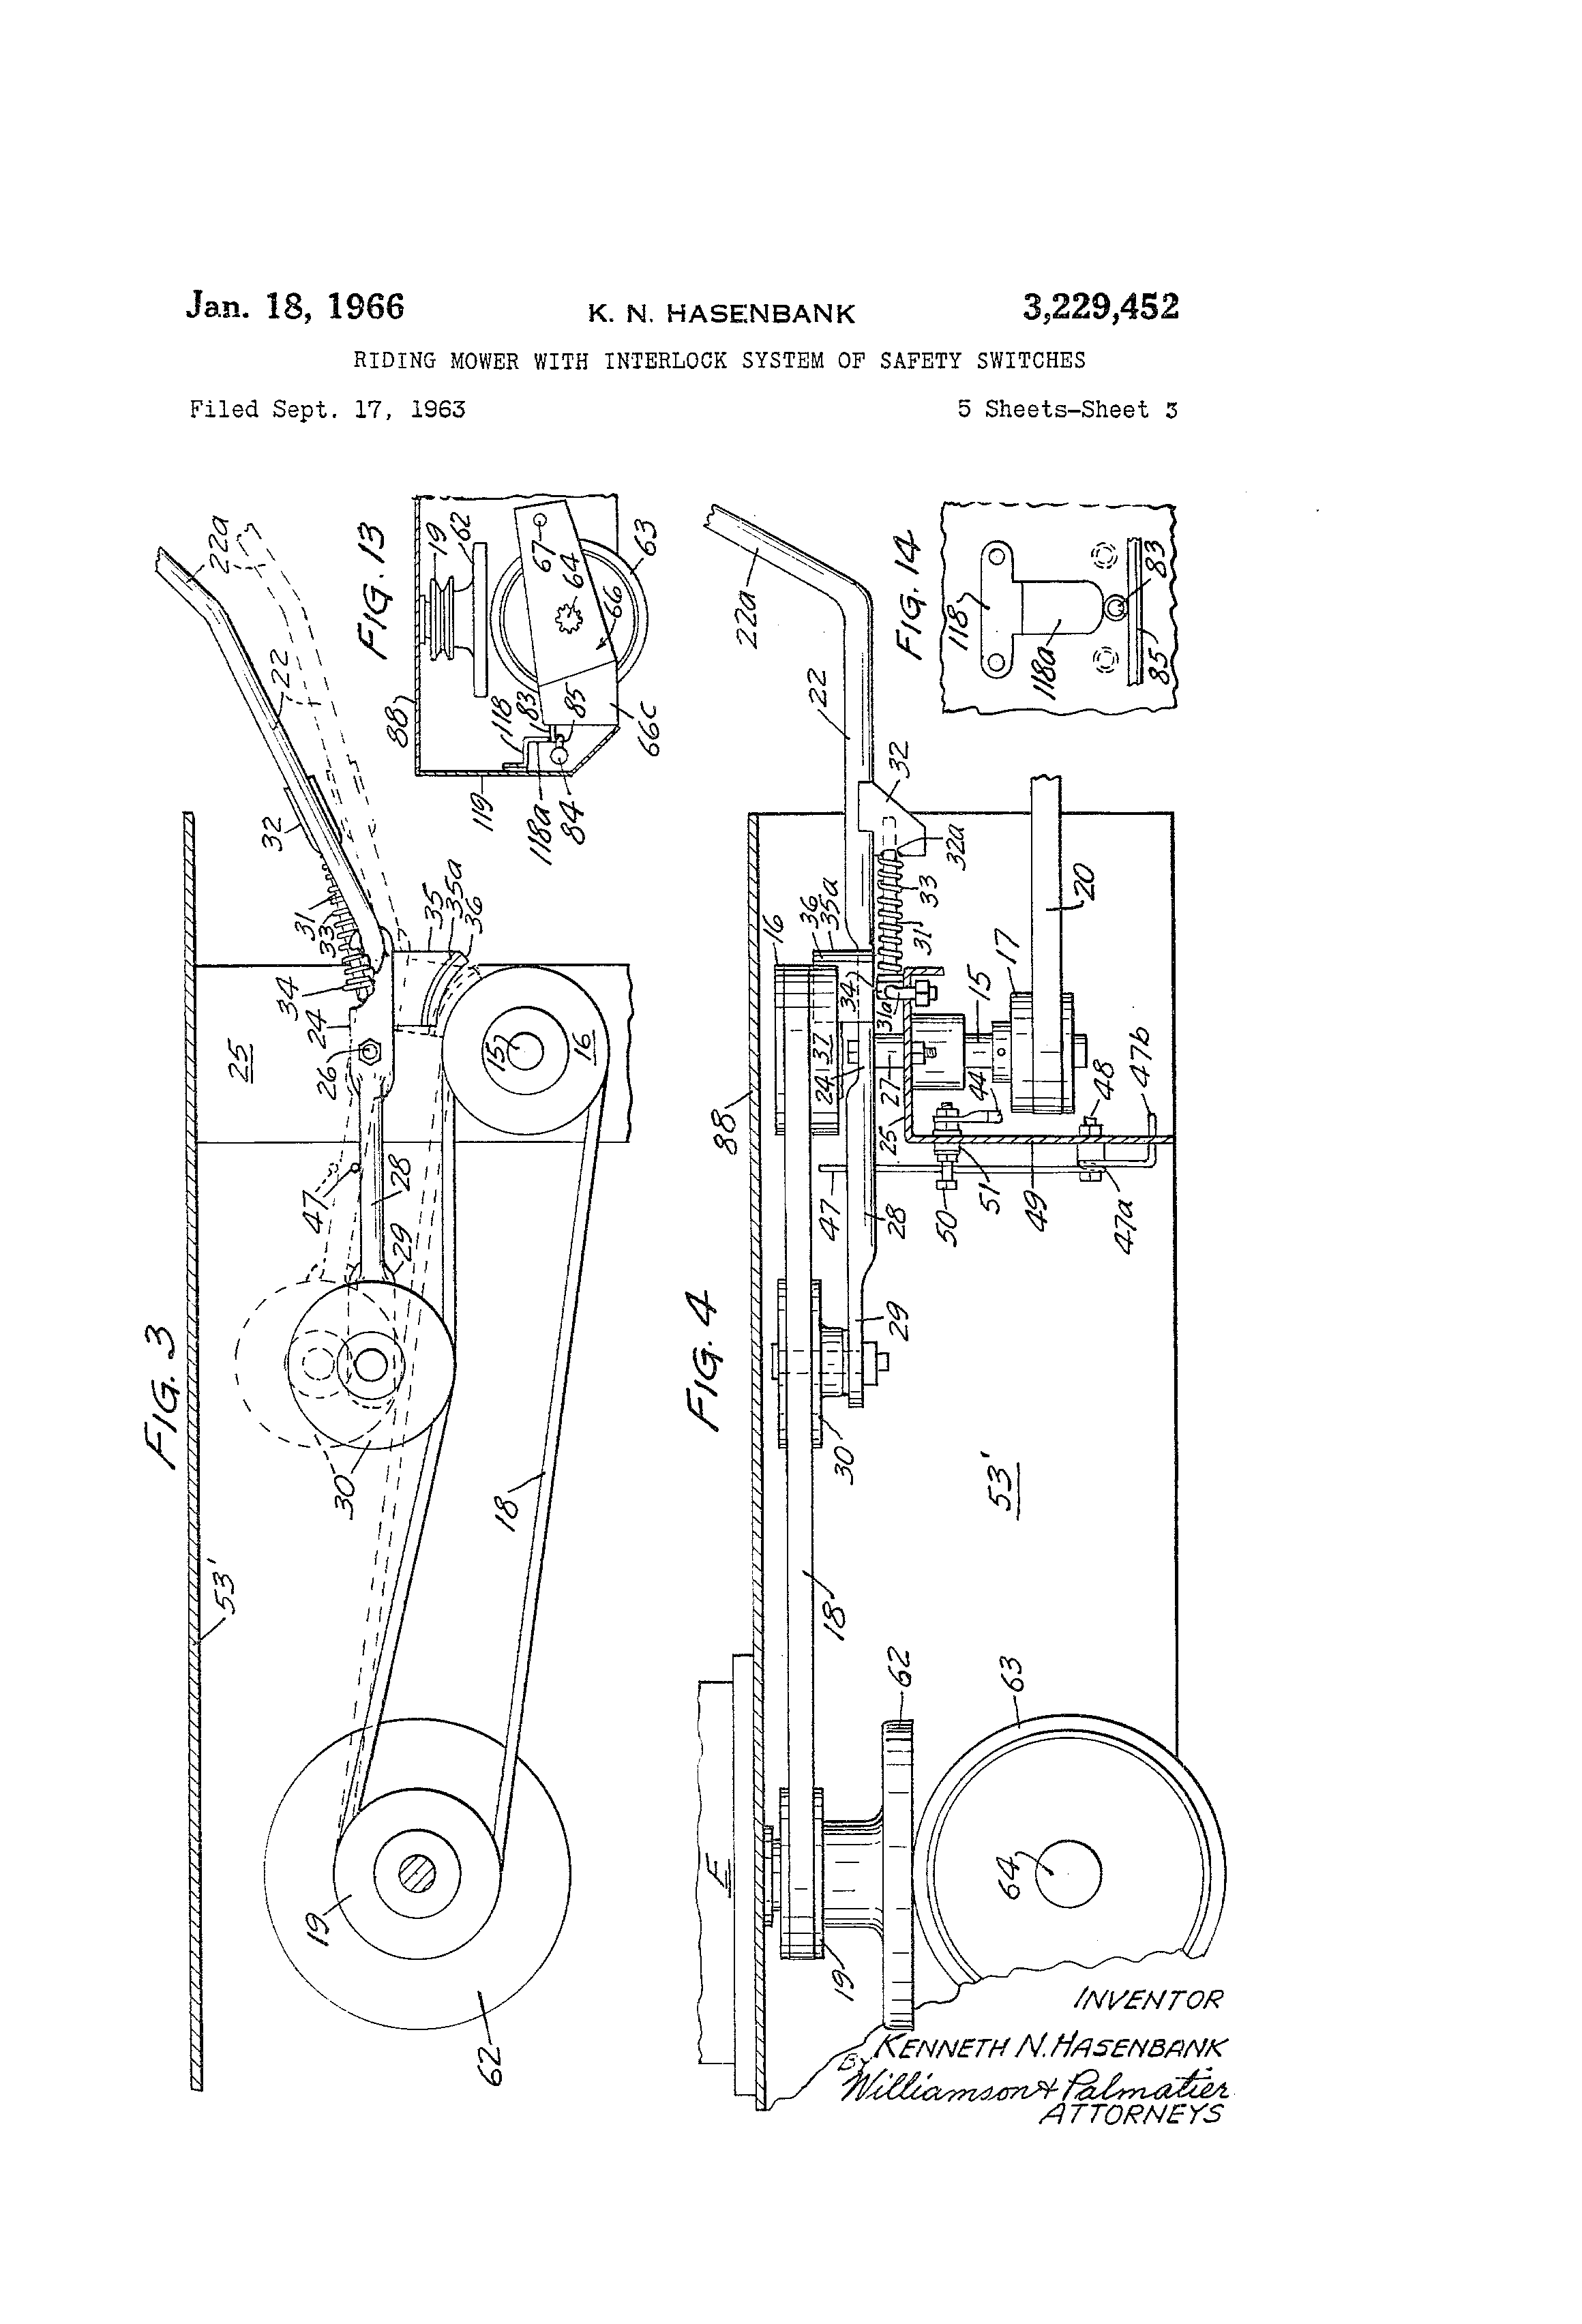 briggs and stratton carburetor diagram wiring toro lawn mower briggs stratton engine as well old briggs and stratton